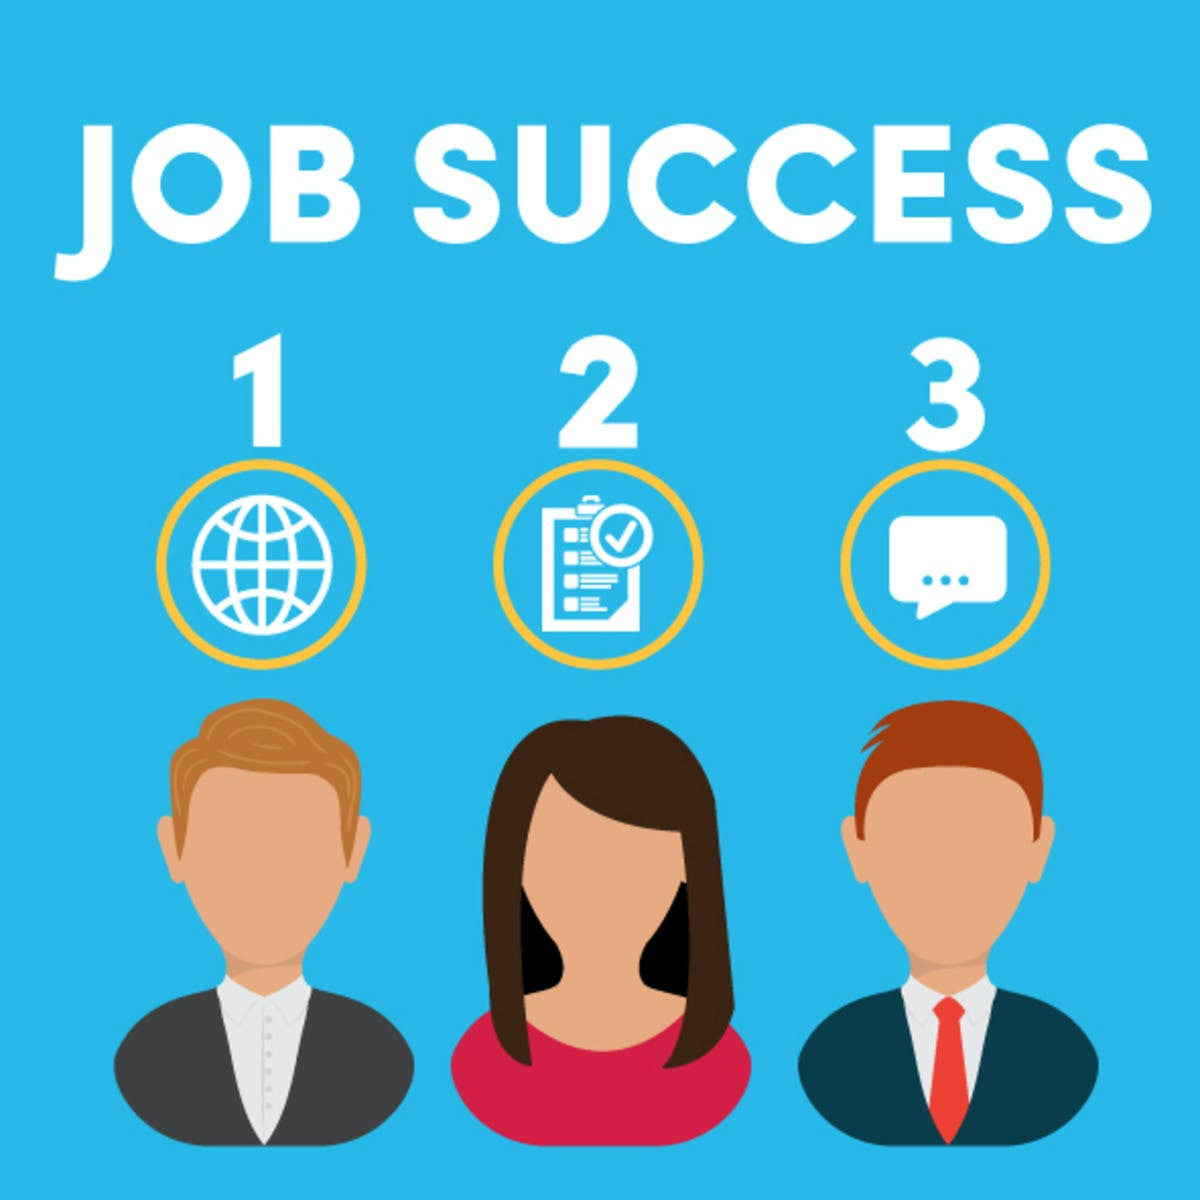 Job Success: Get Hired or Promoted in 3 Steps